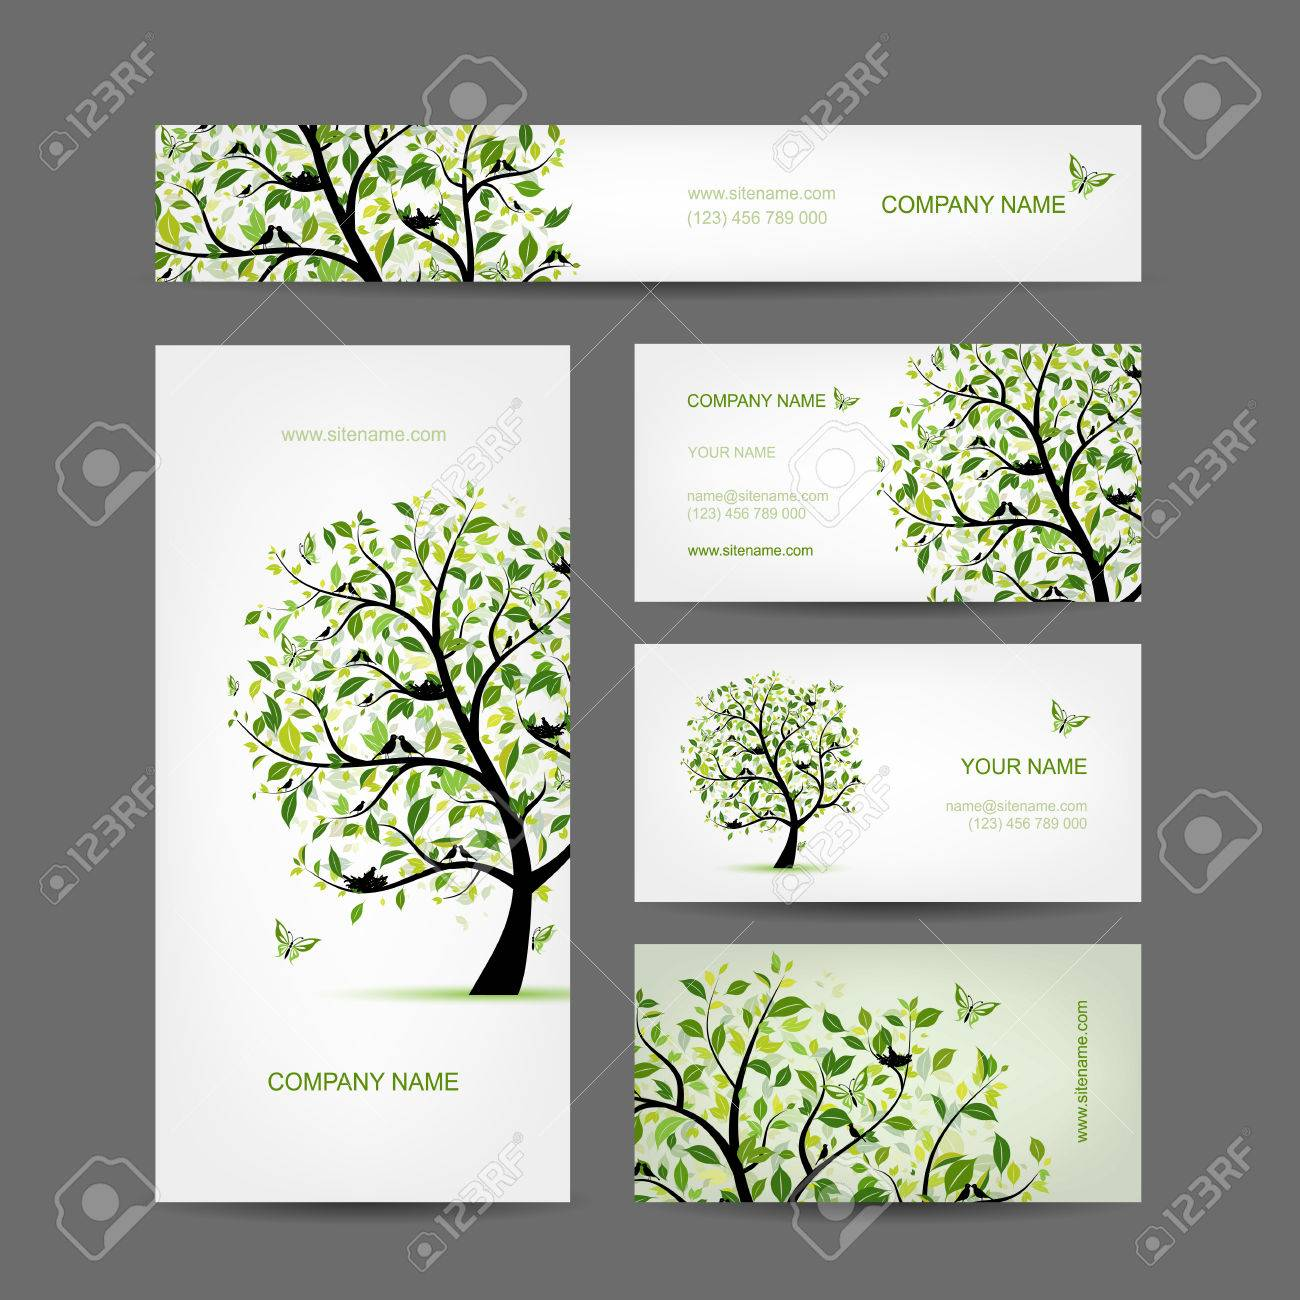 Business Cards Design, Spring Tree With Birds Royalty Free Cliparts ...